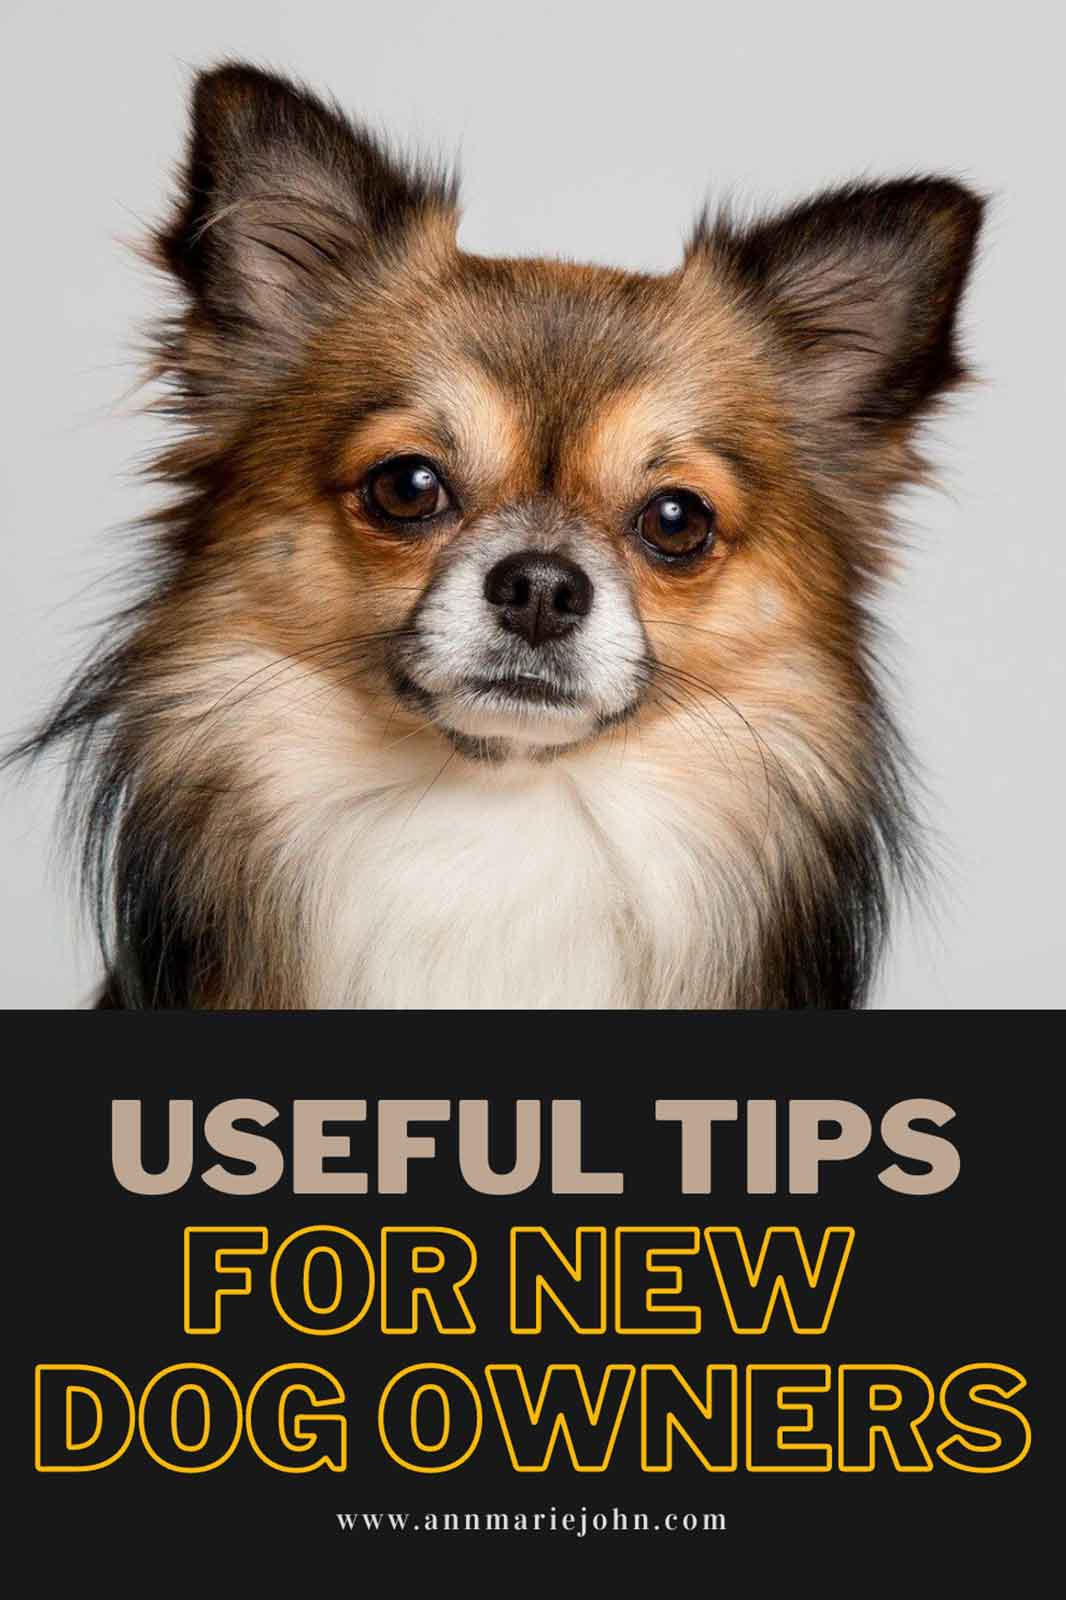 Useful Tips For New Dog Owners